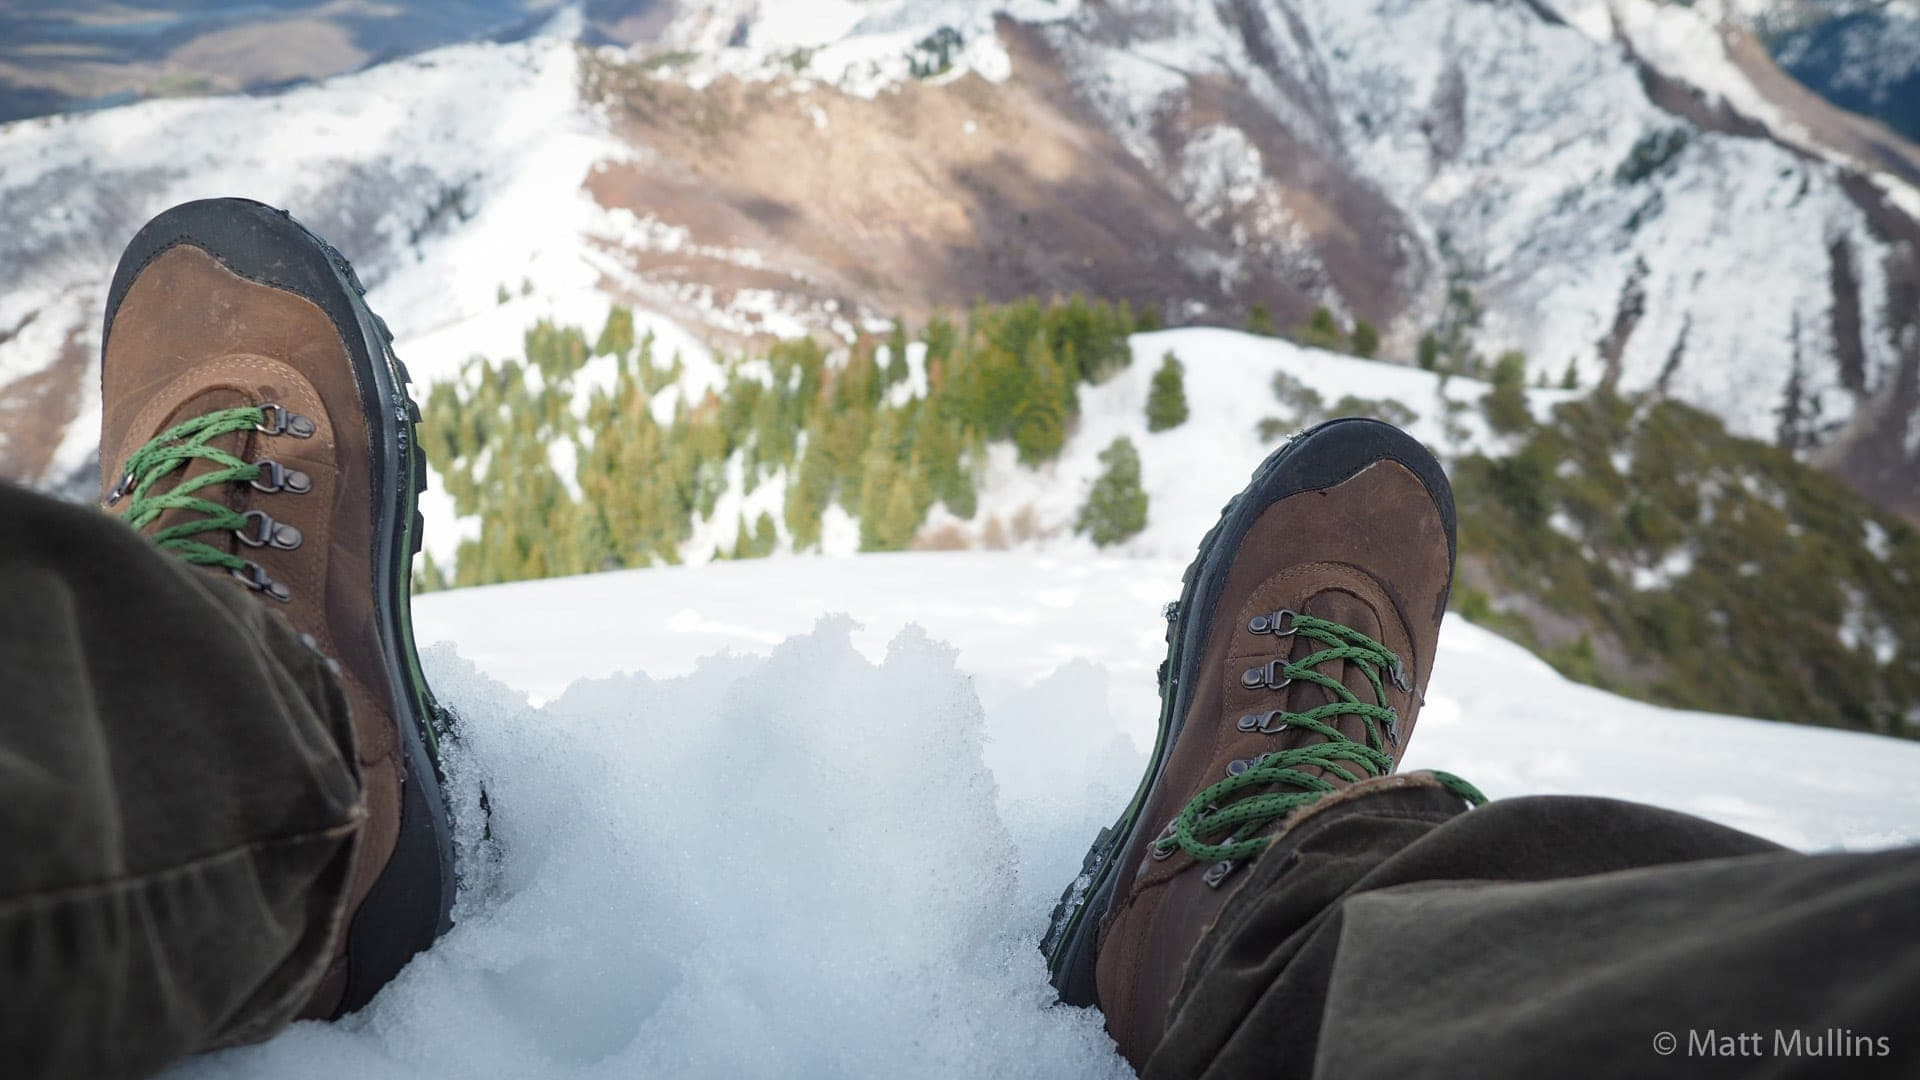 Author's Danner Crag Rat USA Boots in the Wasatch Mountains